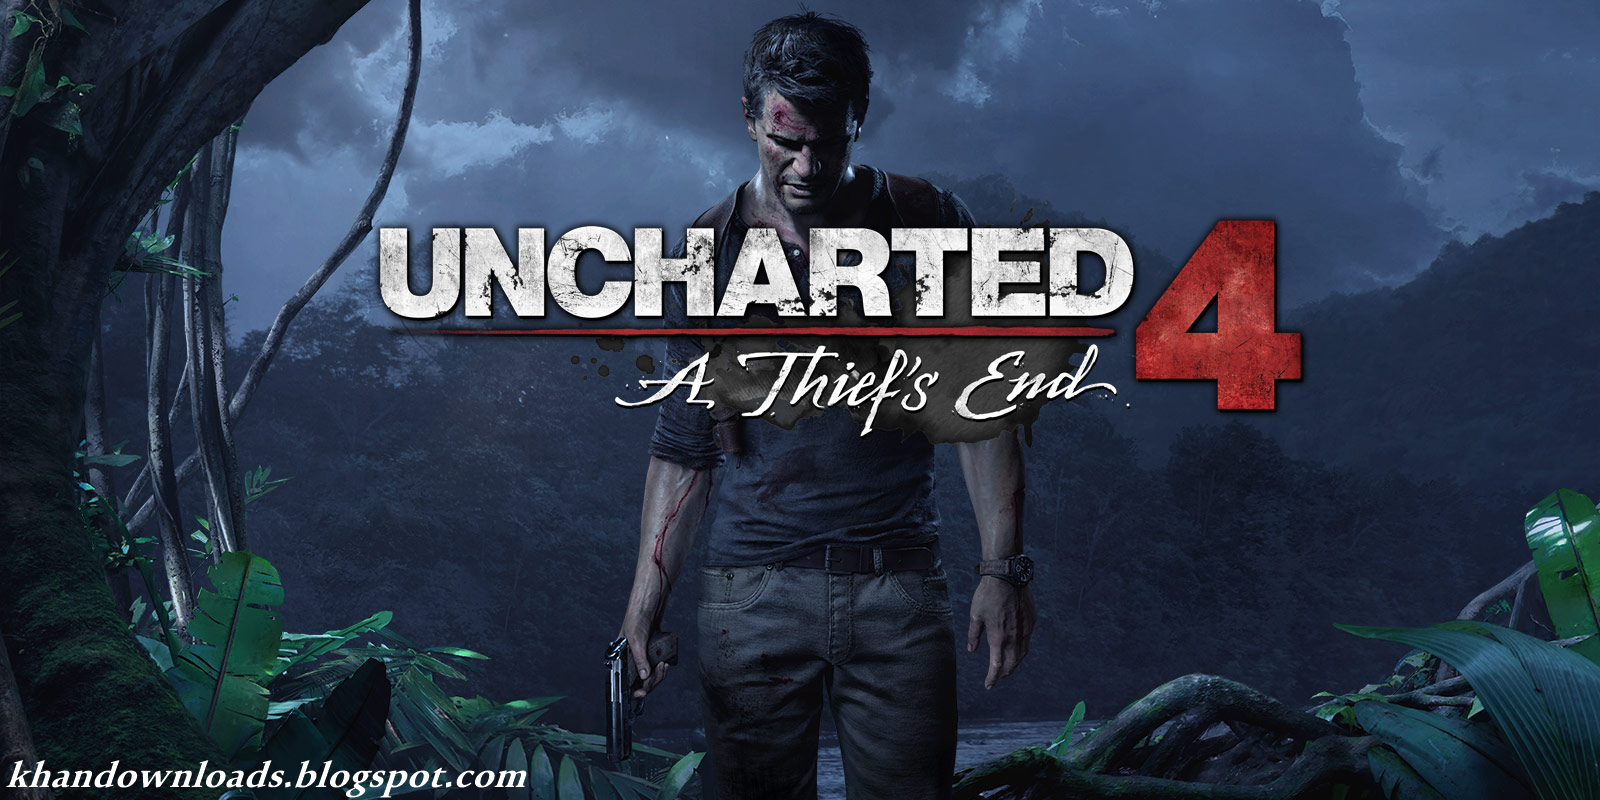 Uncharted 3 Pc Crack Download